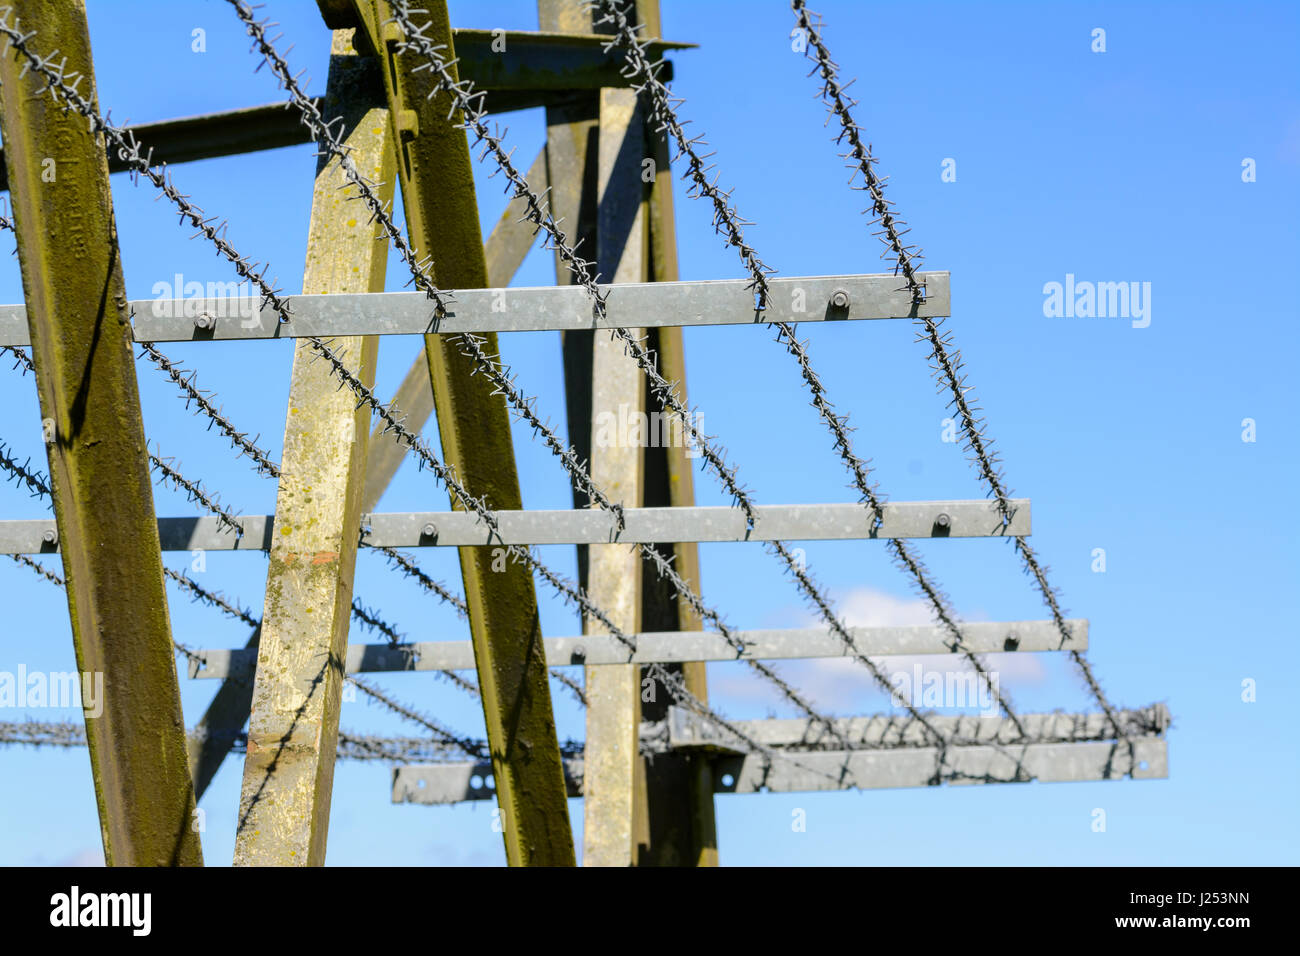 Barbed security wire on an electricity pylon. - Stock Image